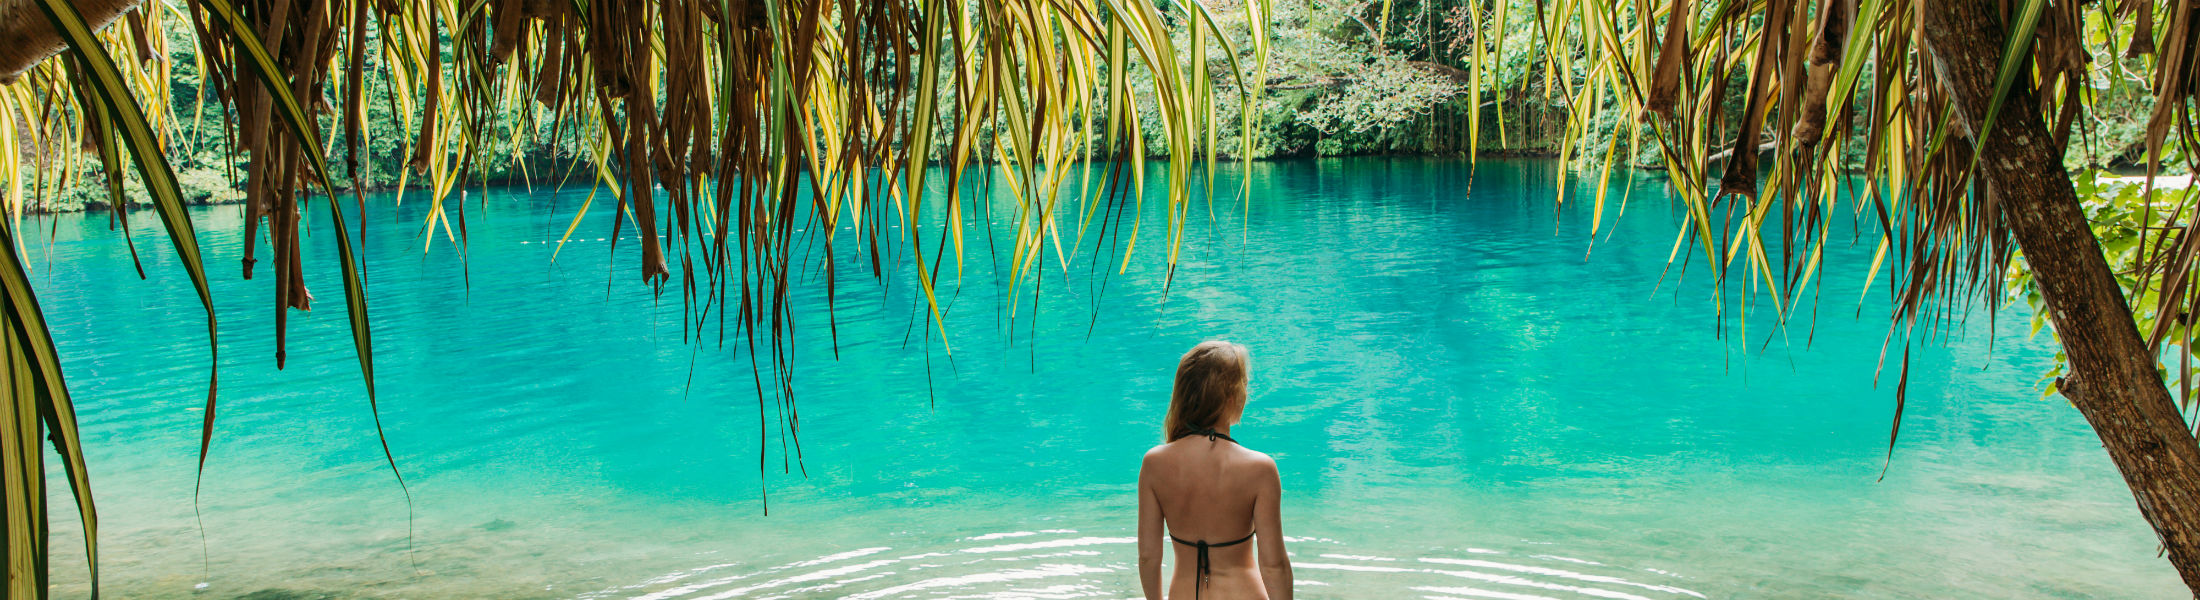 Girl in blue lagoon Jamaica